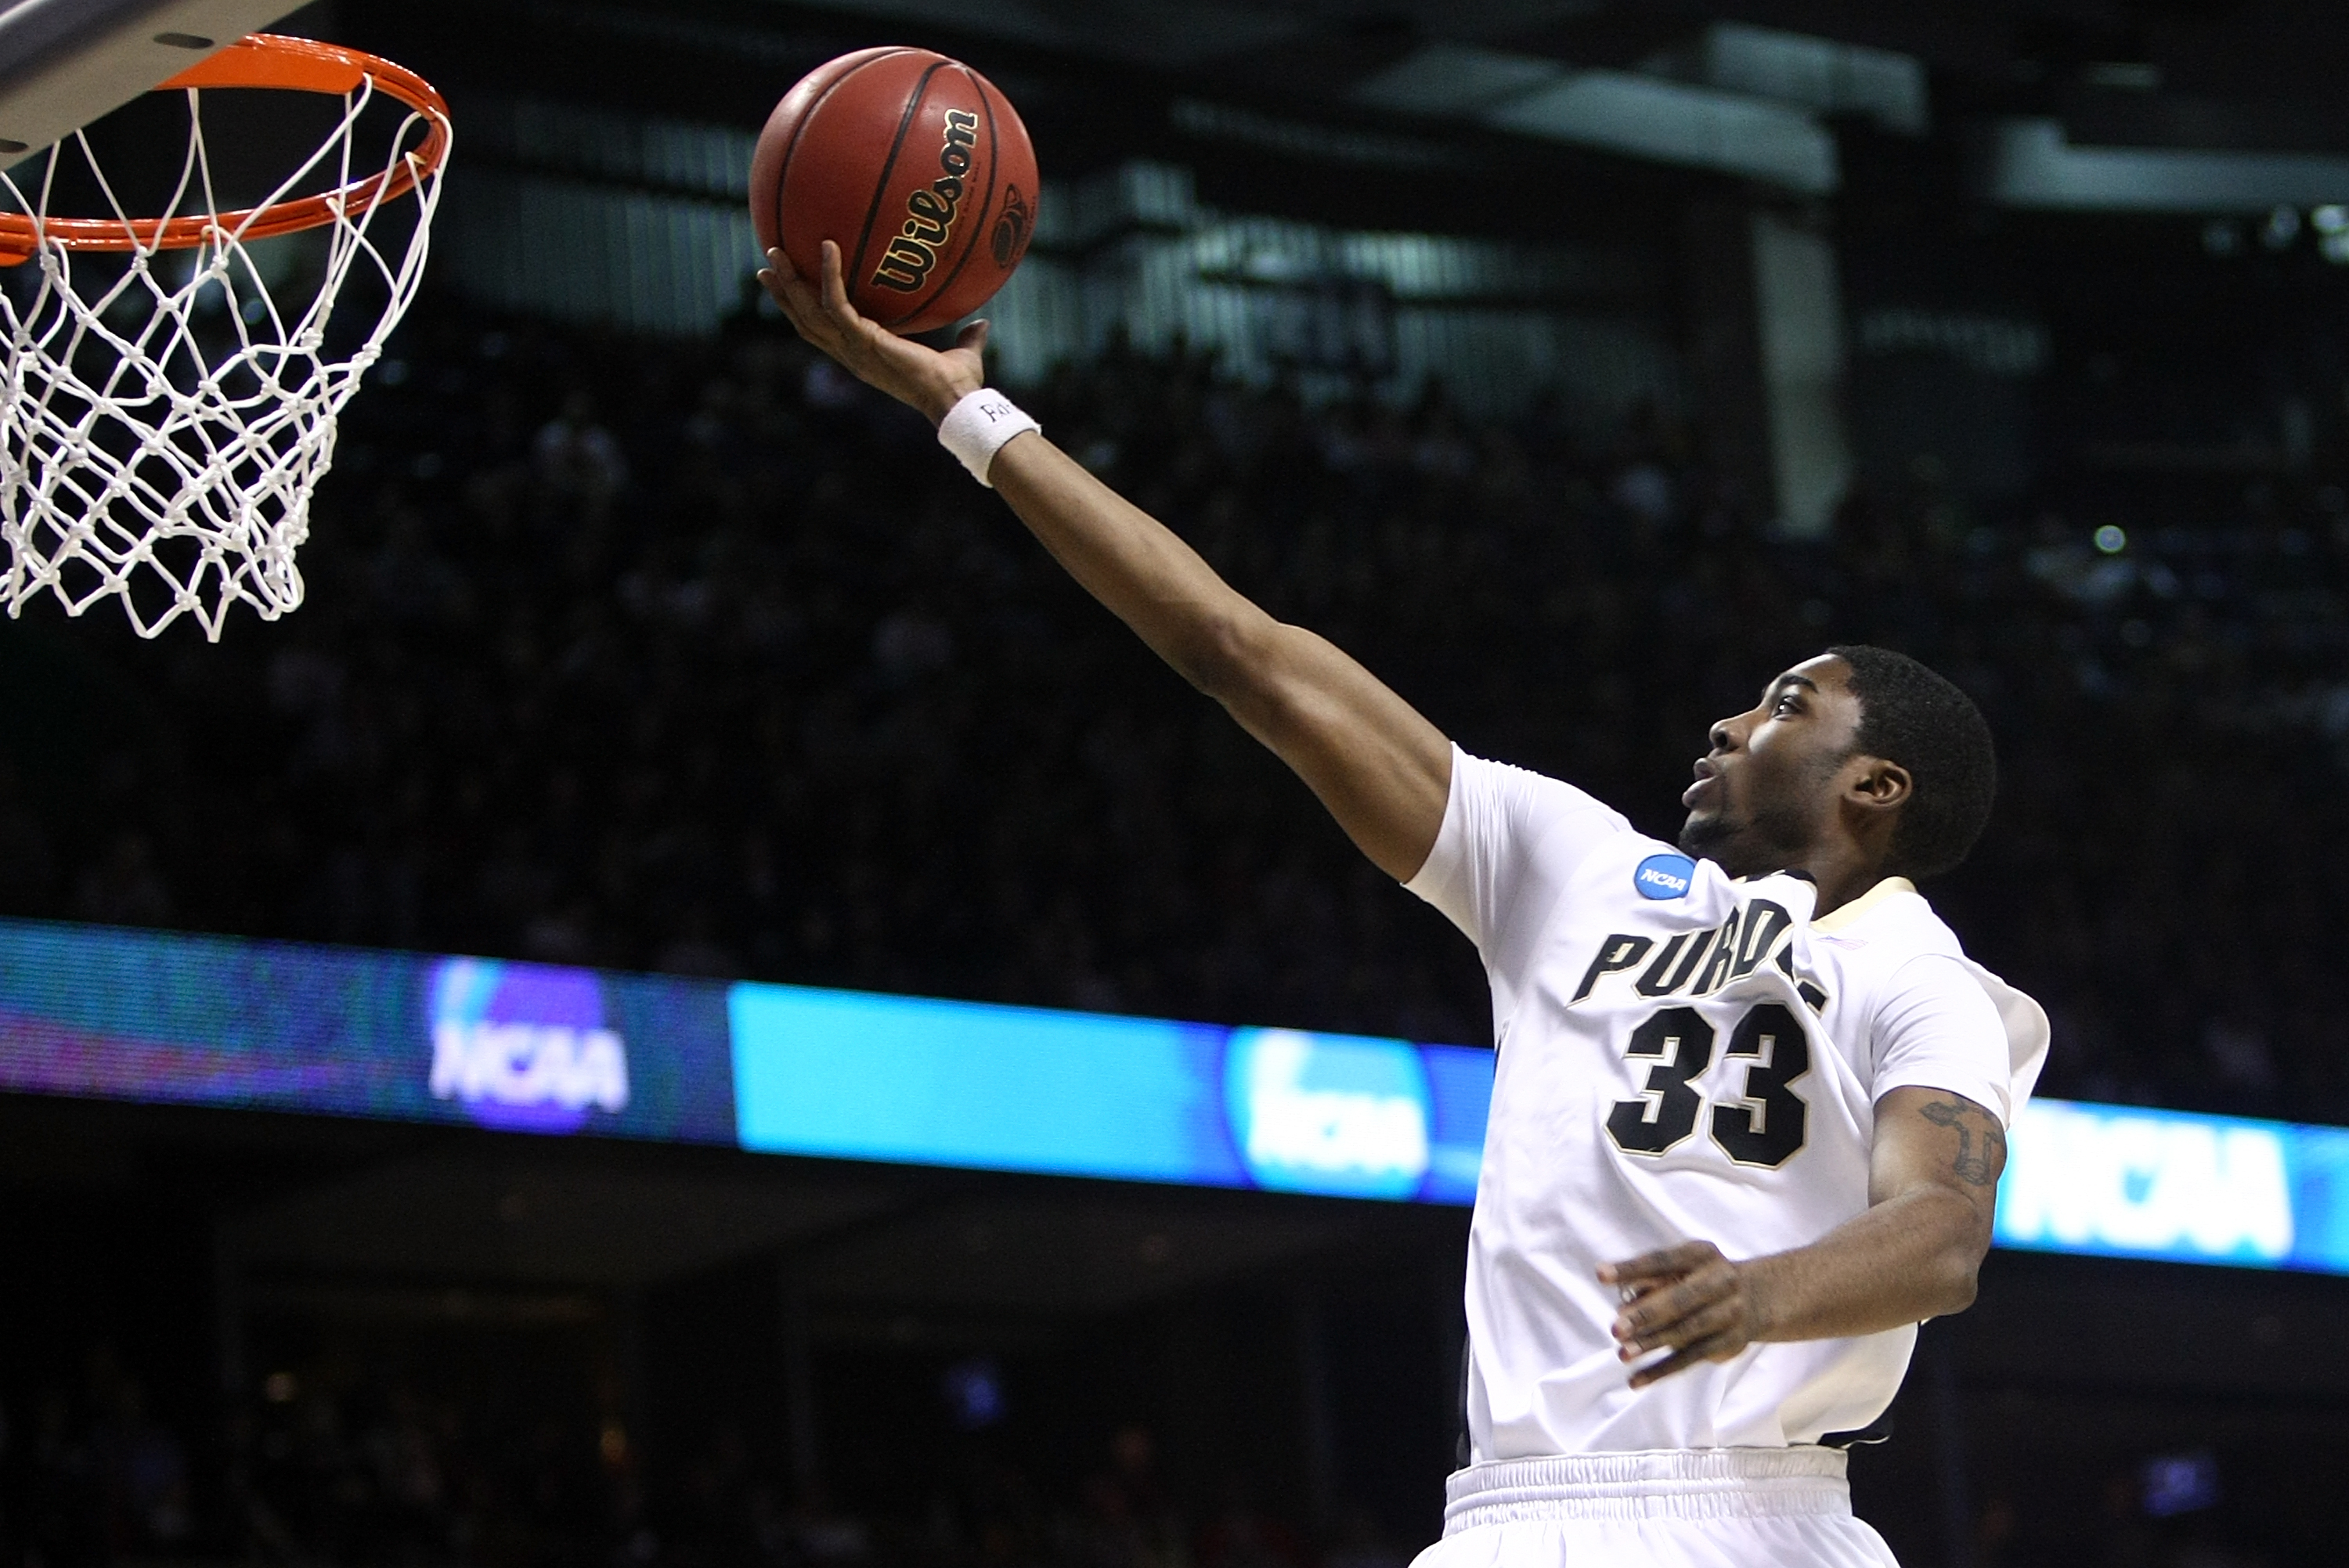 SPOKANE, WA - MARCH 21:  E'Twaun Moore #33 of the Purdue Boilermakers lays up the ball against the Texas A&M Aggies for the ball during the second round of the 2010 NCAA men's basketball tournament at Spokane Arena on March 21, 2010 in Spokane, Washington